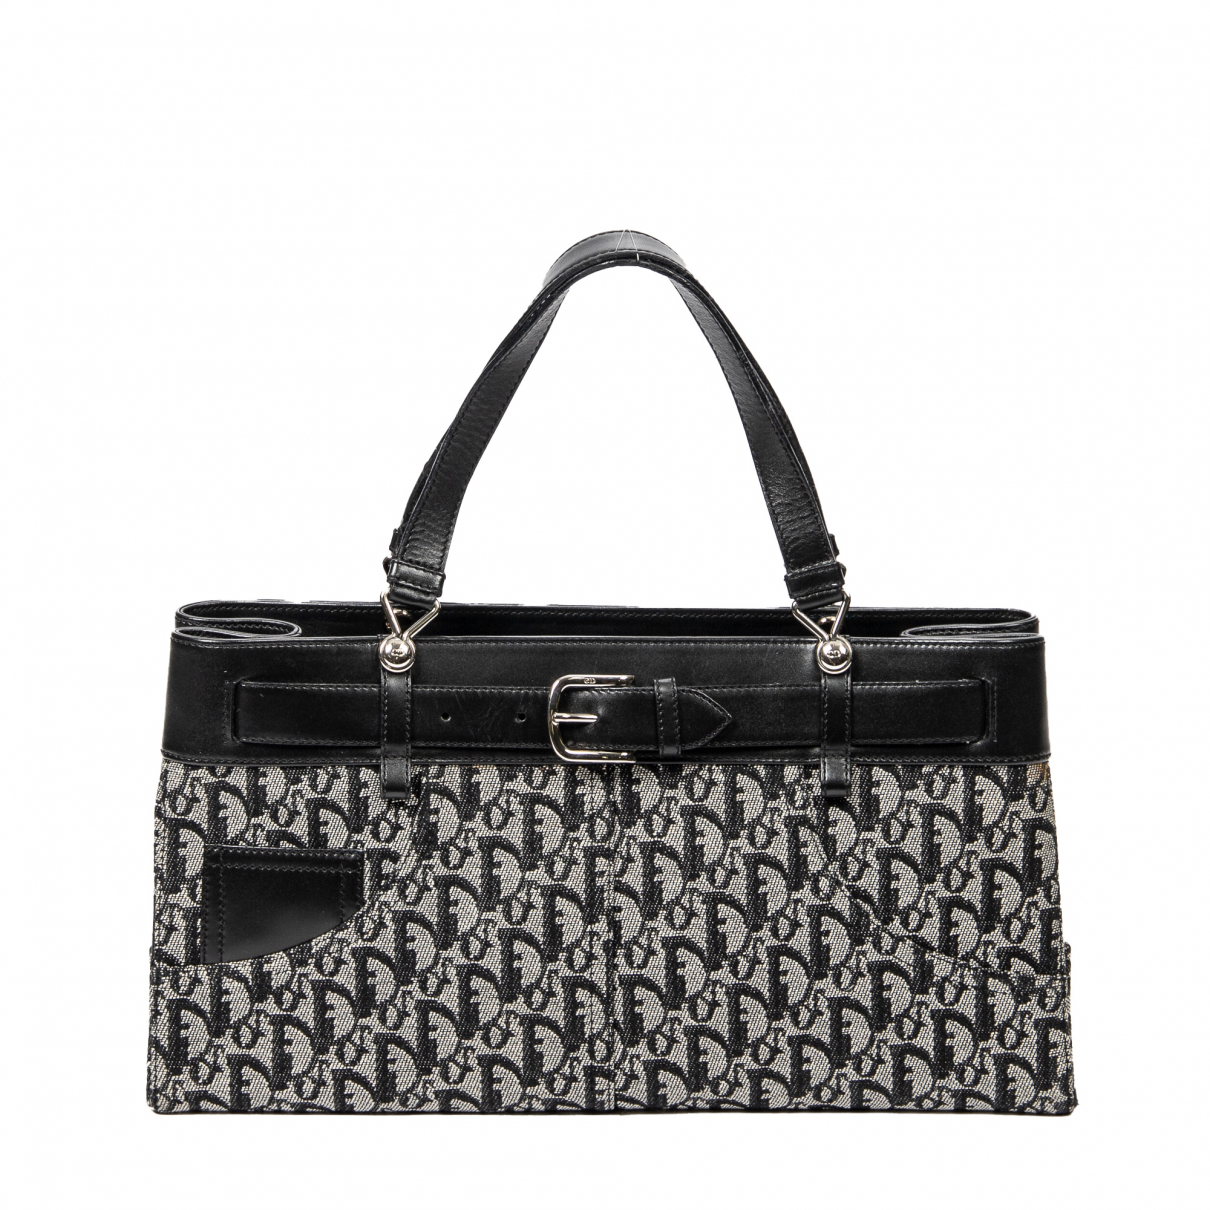 Dior \N Black Cotton handbag for Women \N